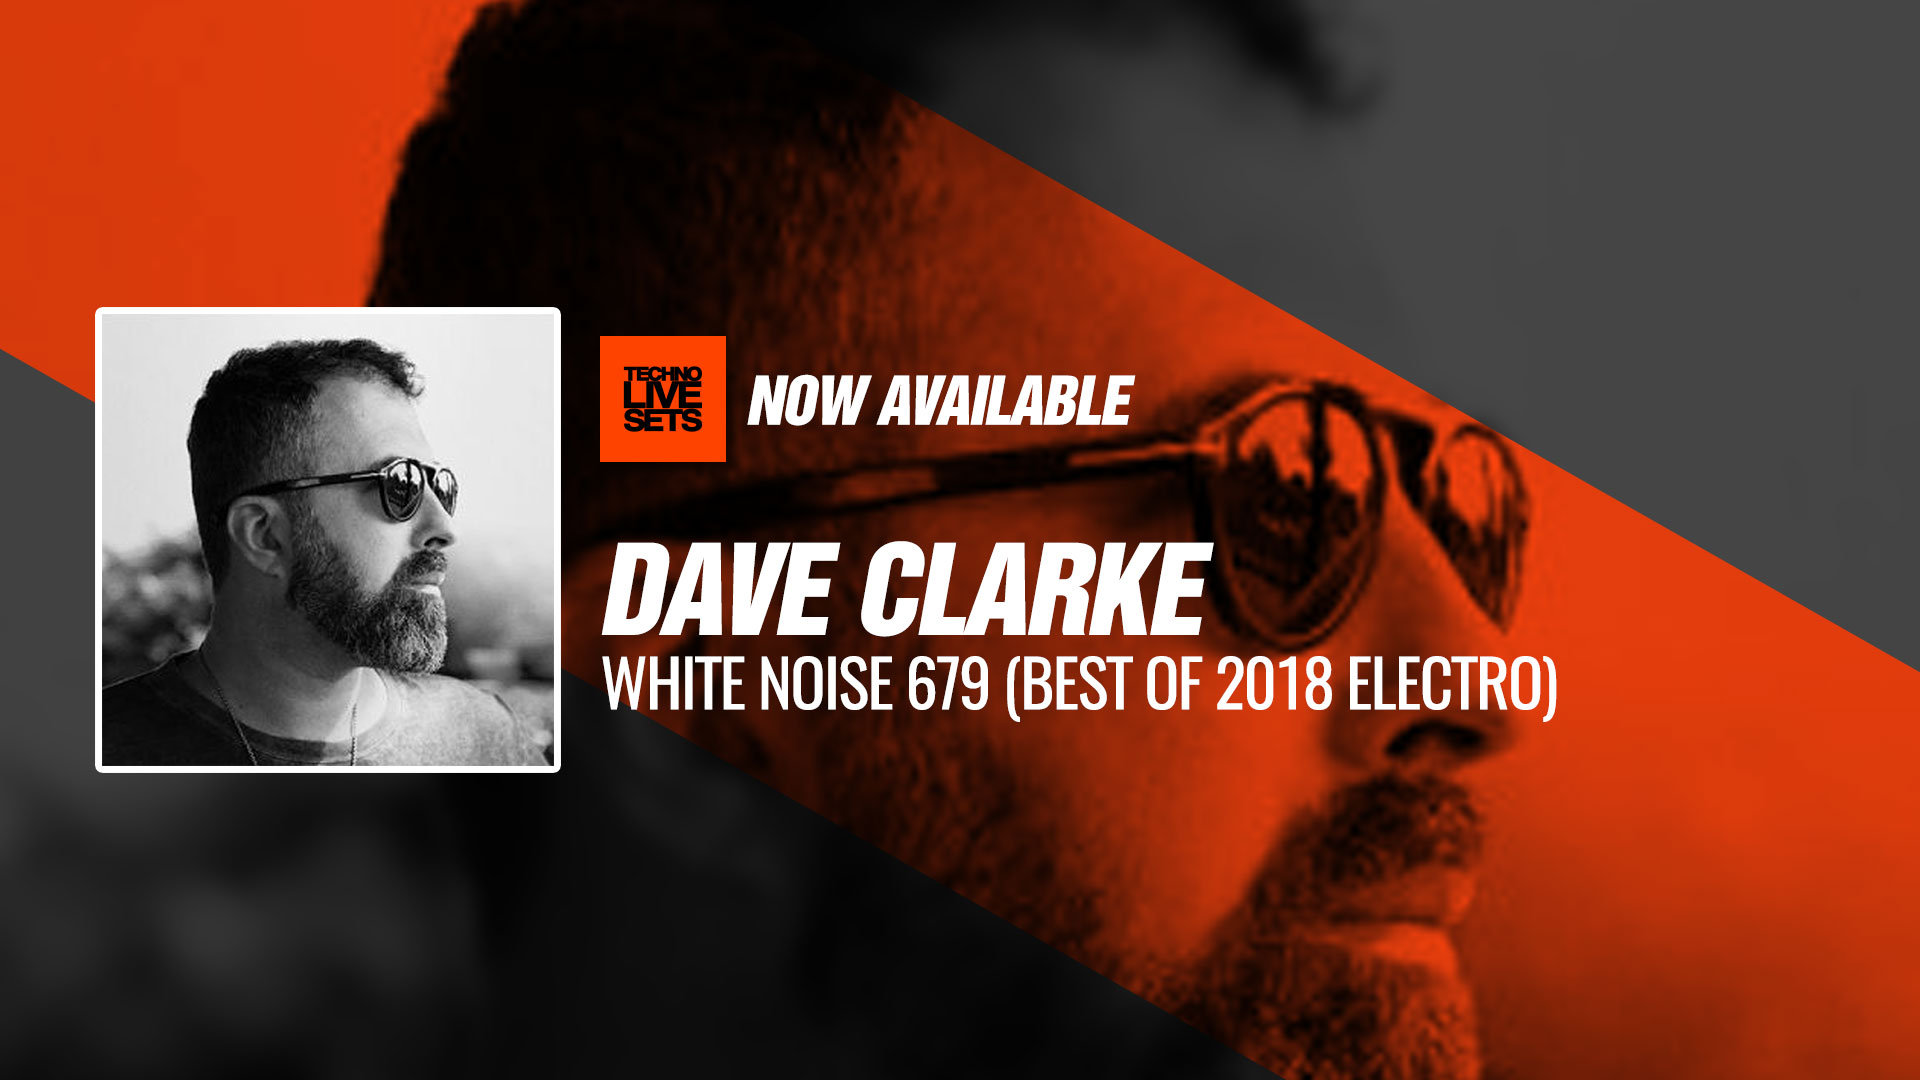 Dave Clarke 2019 White Noise 679 (Best Of 2018 Electro) 05